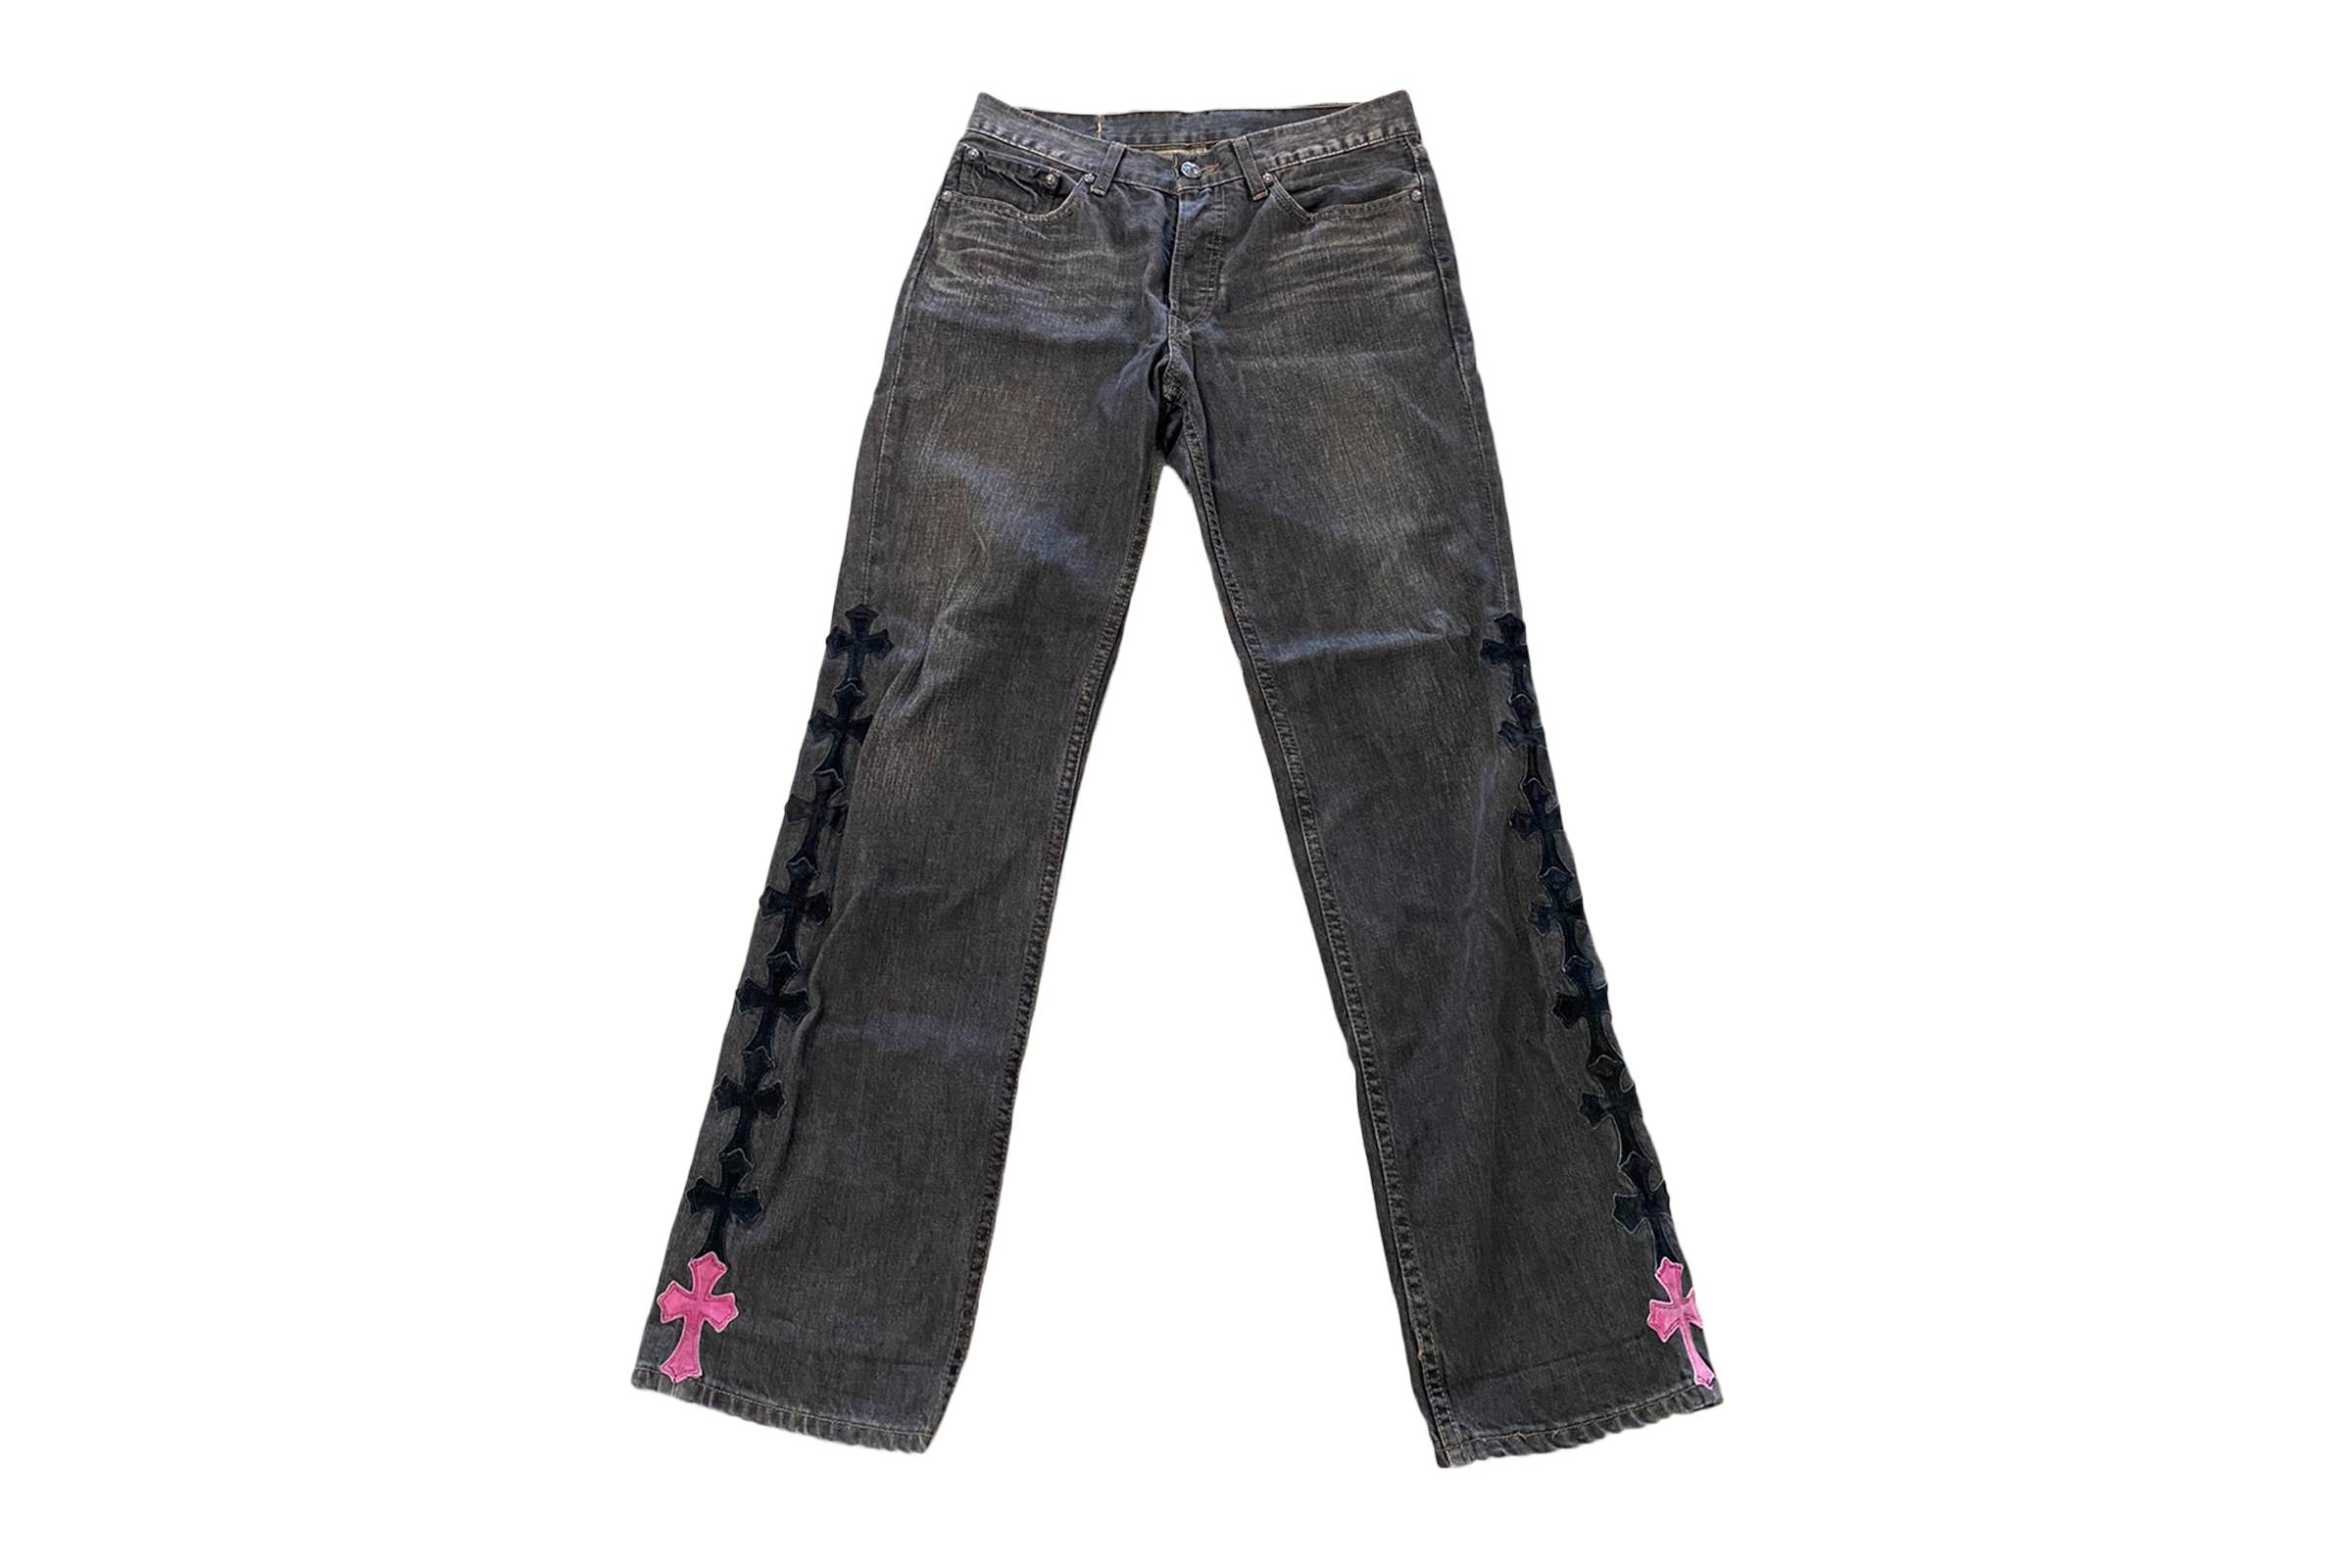 Chrome Hearts x Levi's Special Order Cross Patchwork Denim